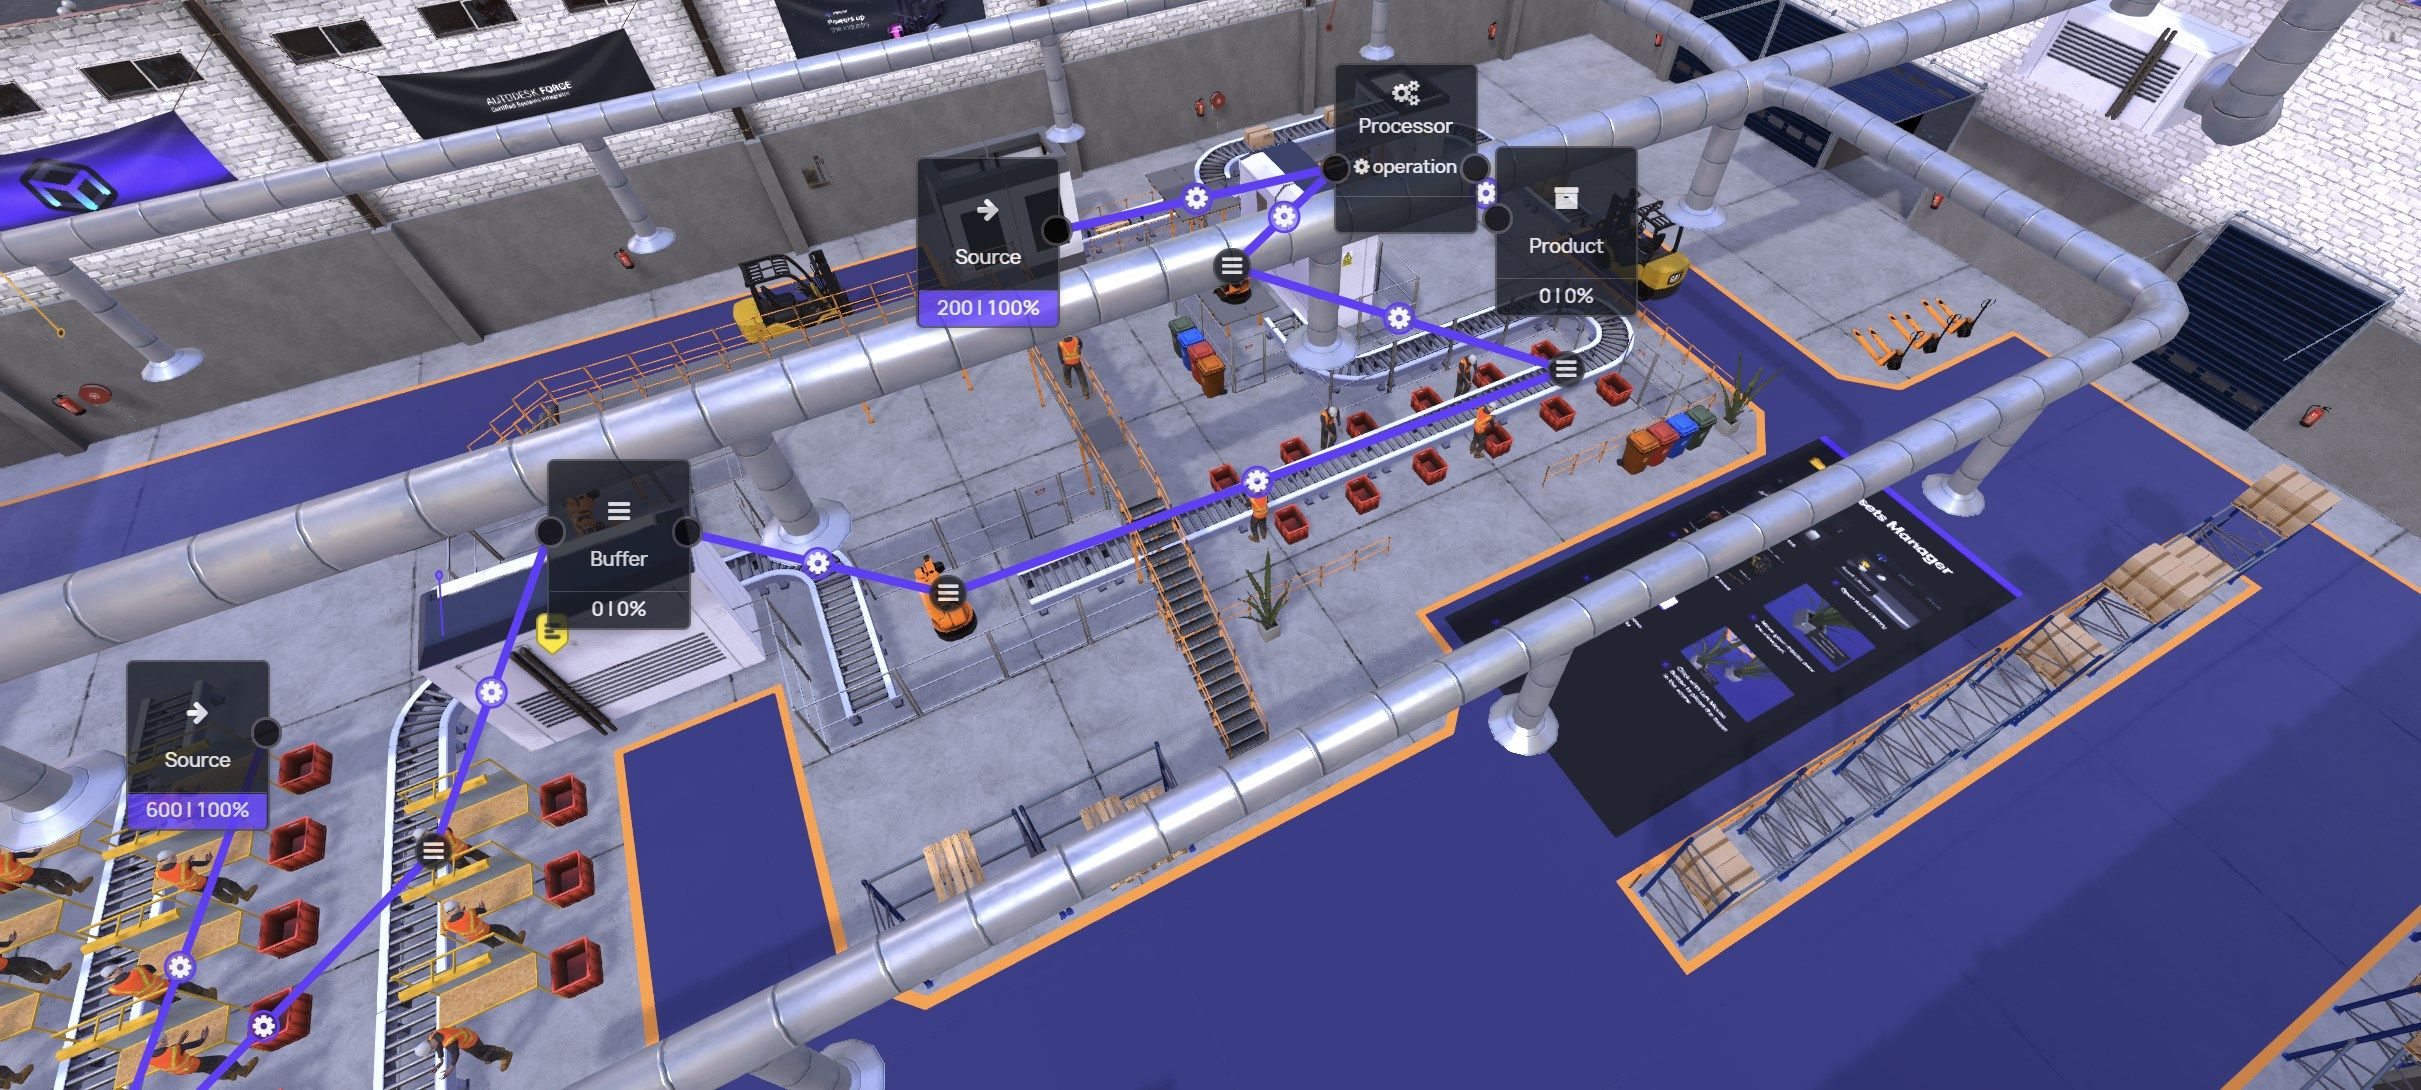 How to optimize the manufacturing processes with Moicon Process Analysis?